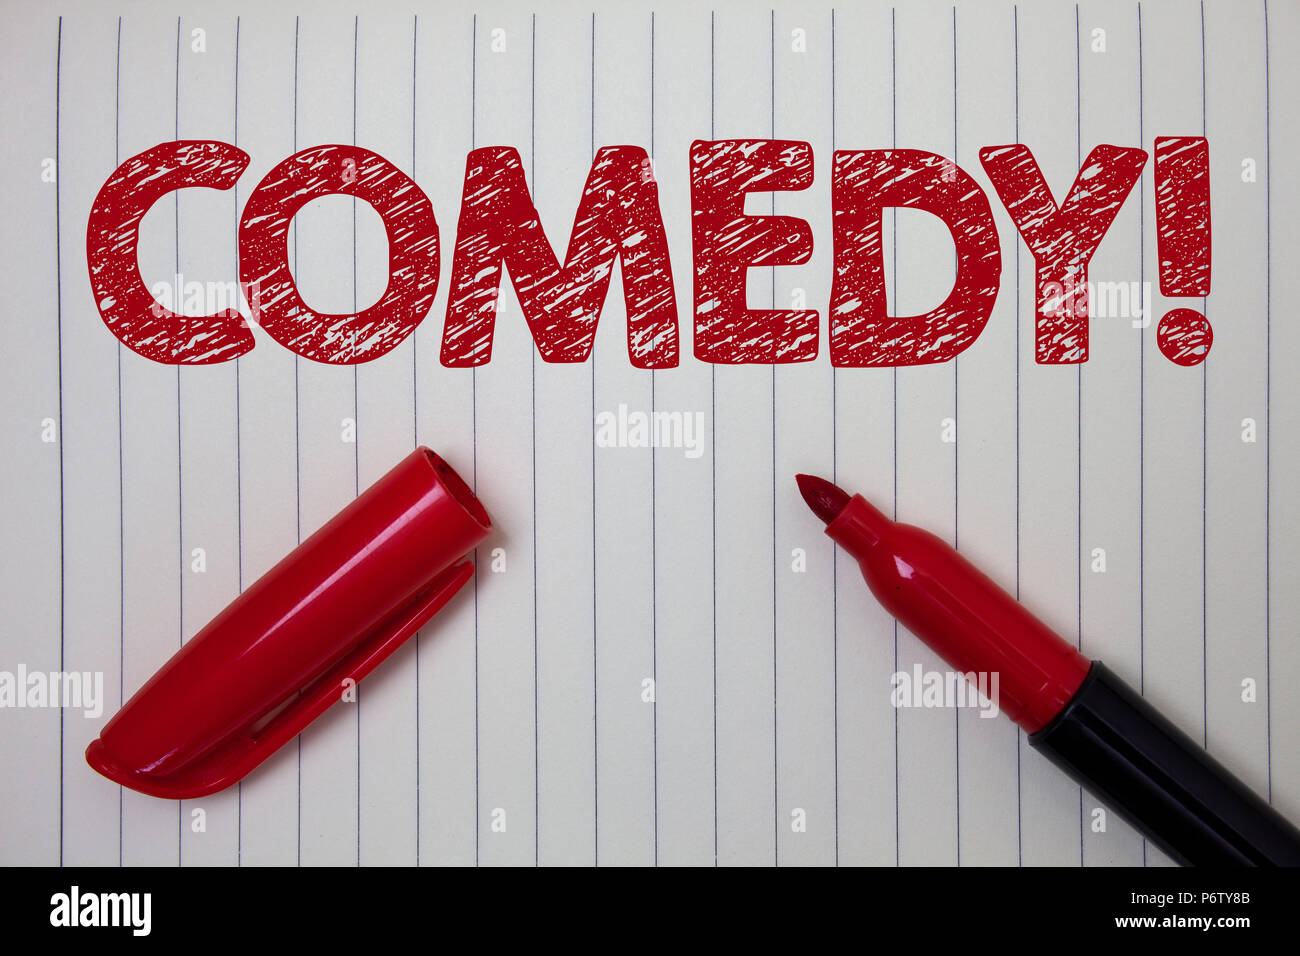 Word writing text Comedy Call. Business concept for Fun Humor Satire Sitcom Hilarity Joking Entertainment Laughing Notebook paper background open mark - Stock Image